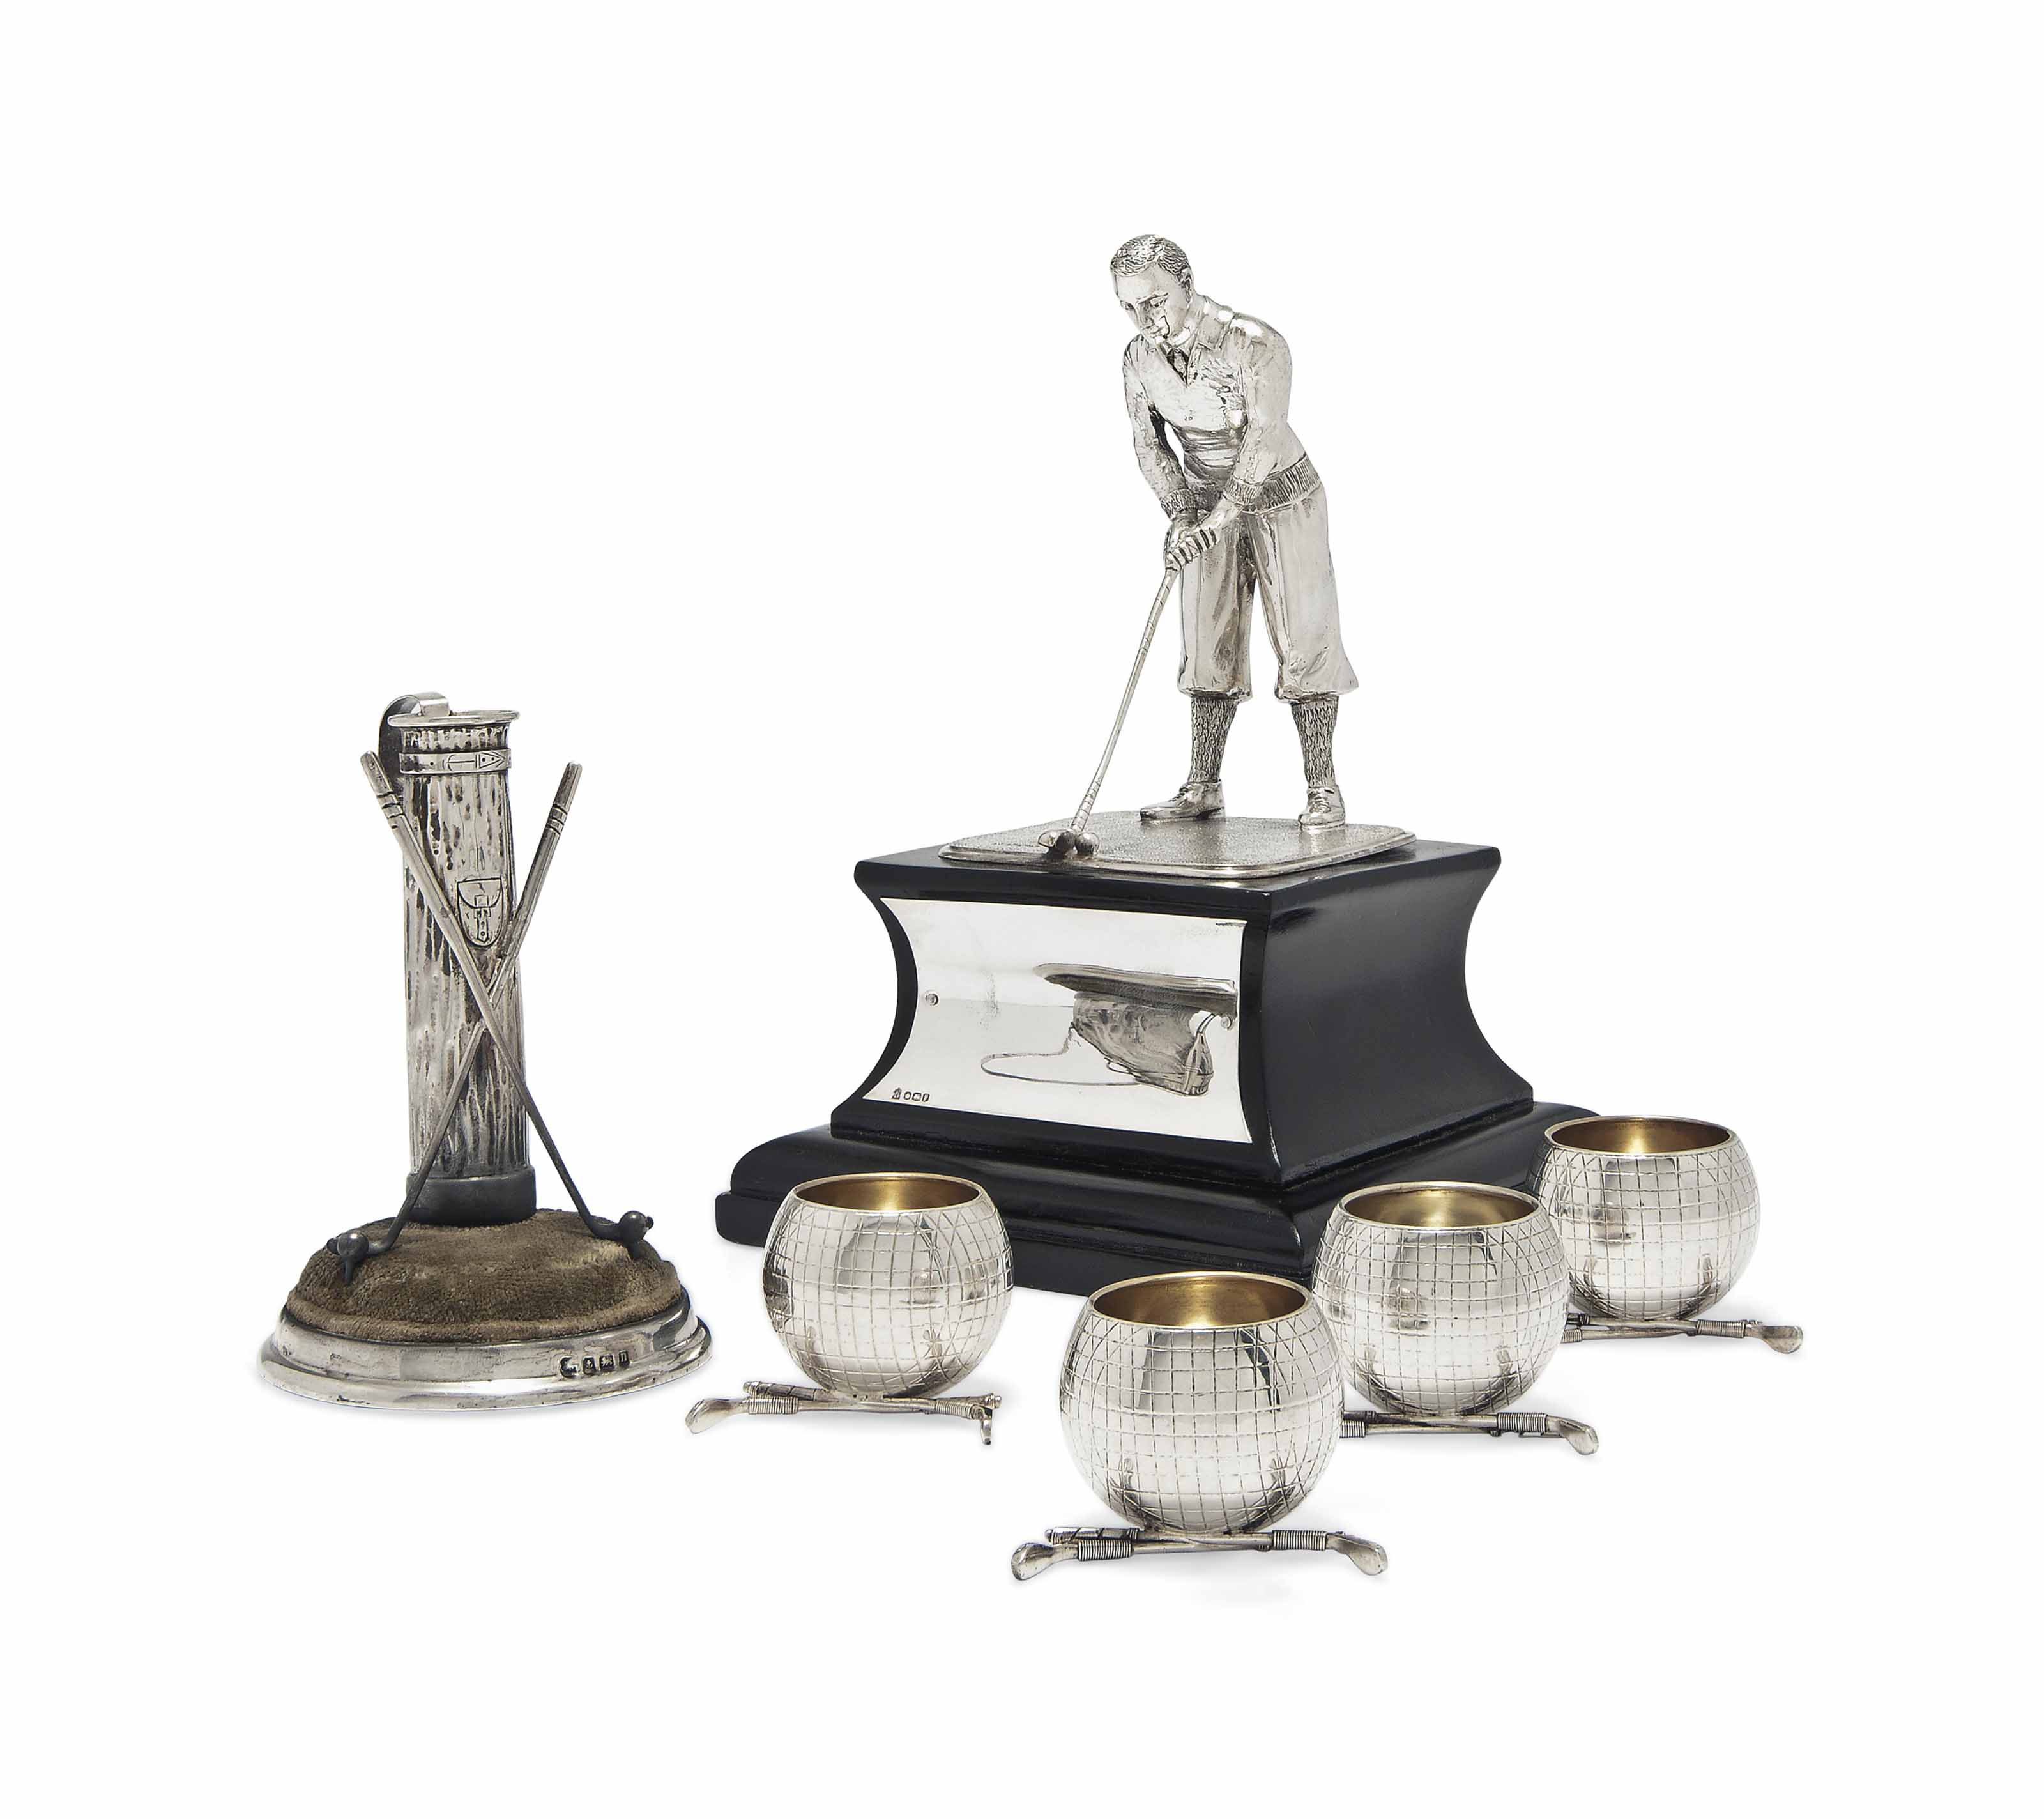 GOLFING INTEREST:- A SILVER TROPHY IN THE FORM OF A GOLFER PUTTING